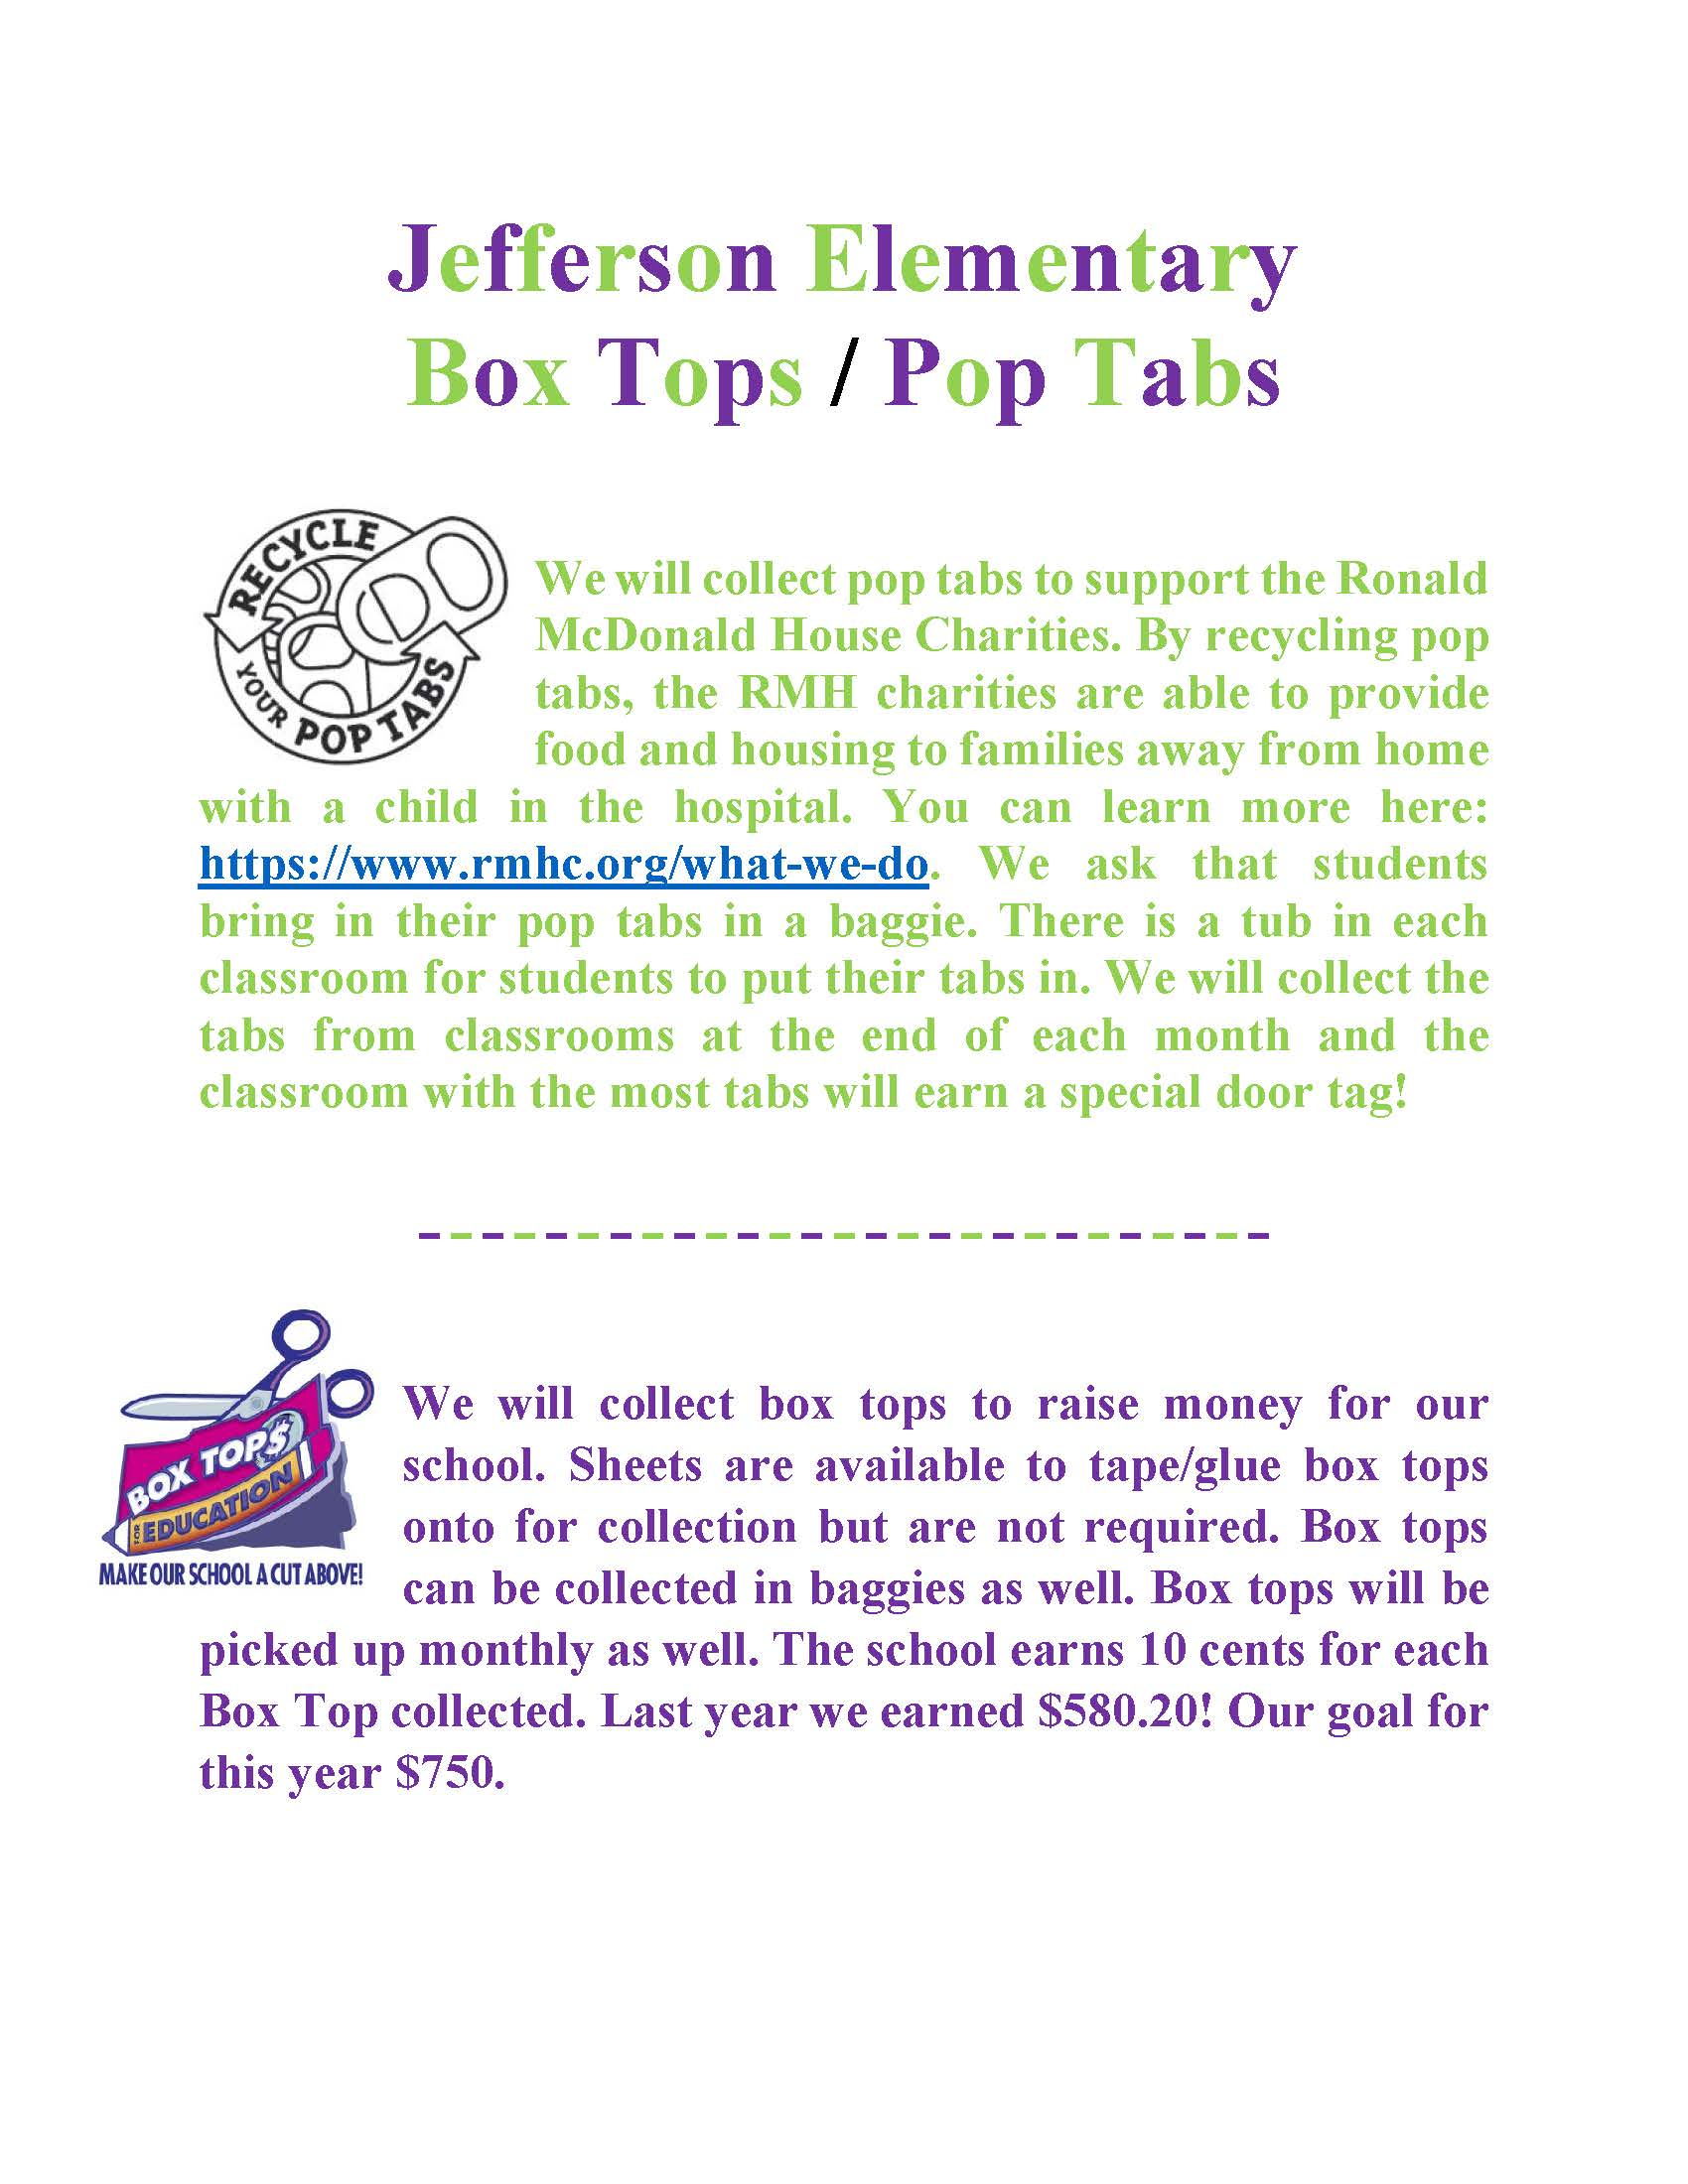 Box Tops/Pop Tabs Flyer